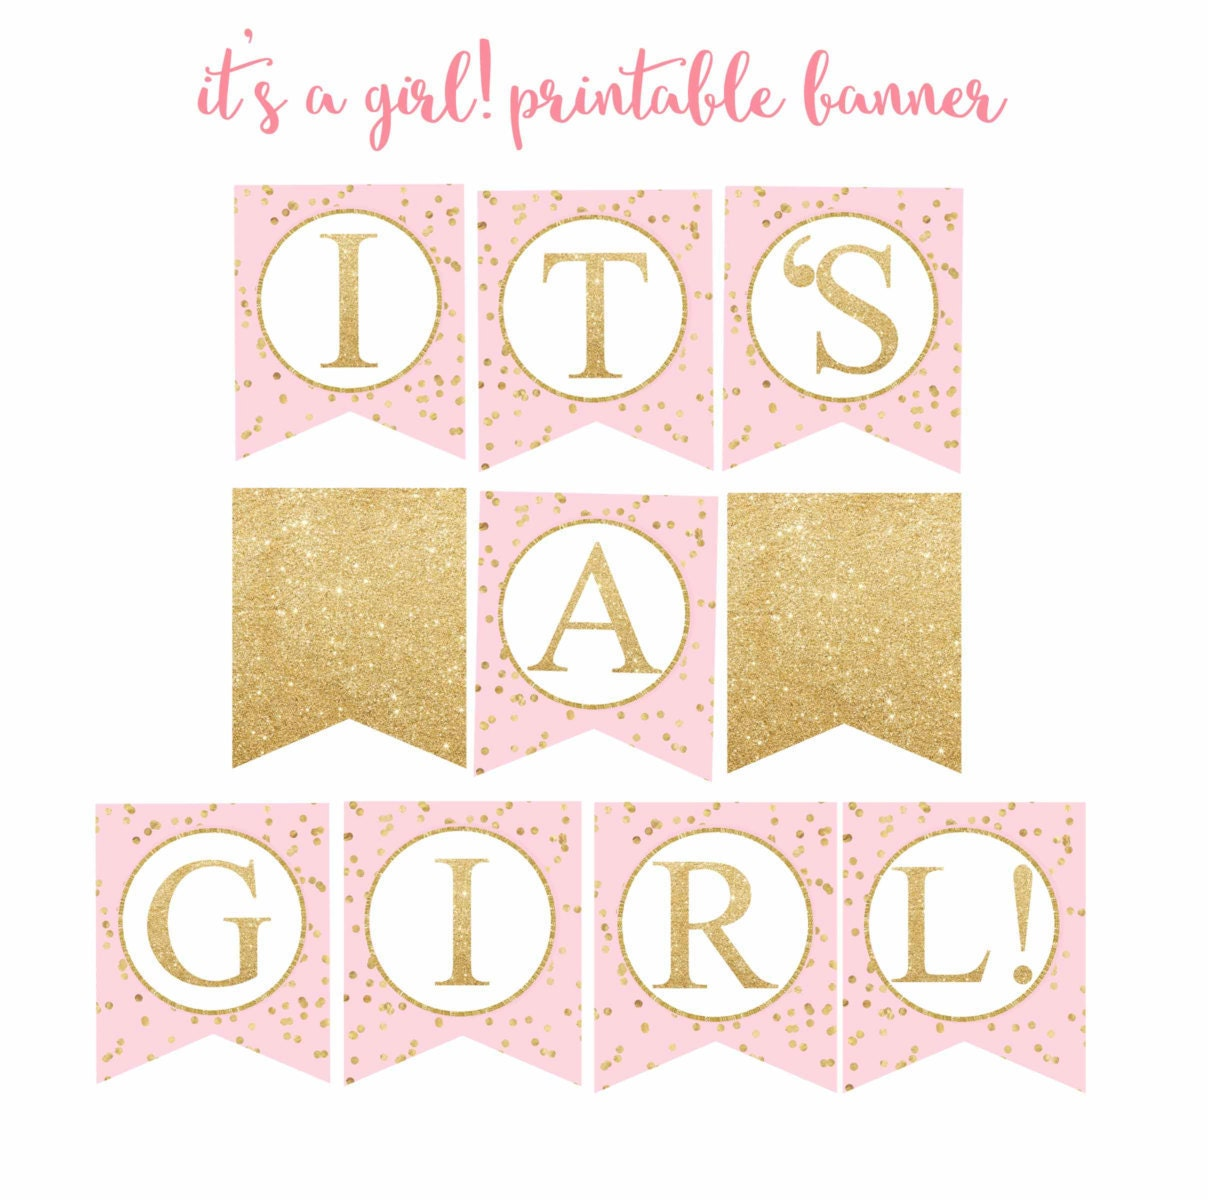 image about Free Printable Baby Shower Banner called Red and Gold Boy or girl Shower banner, Its a female! banner, Kid Shower Banner, red and gold printable banner, Electronic Document.